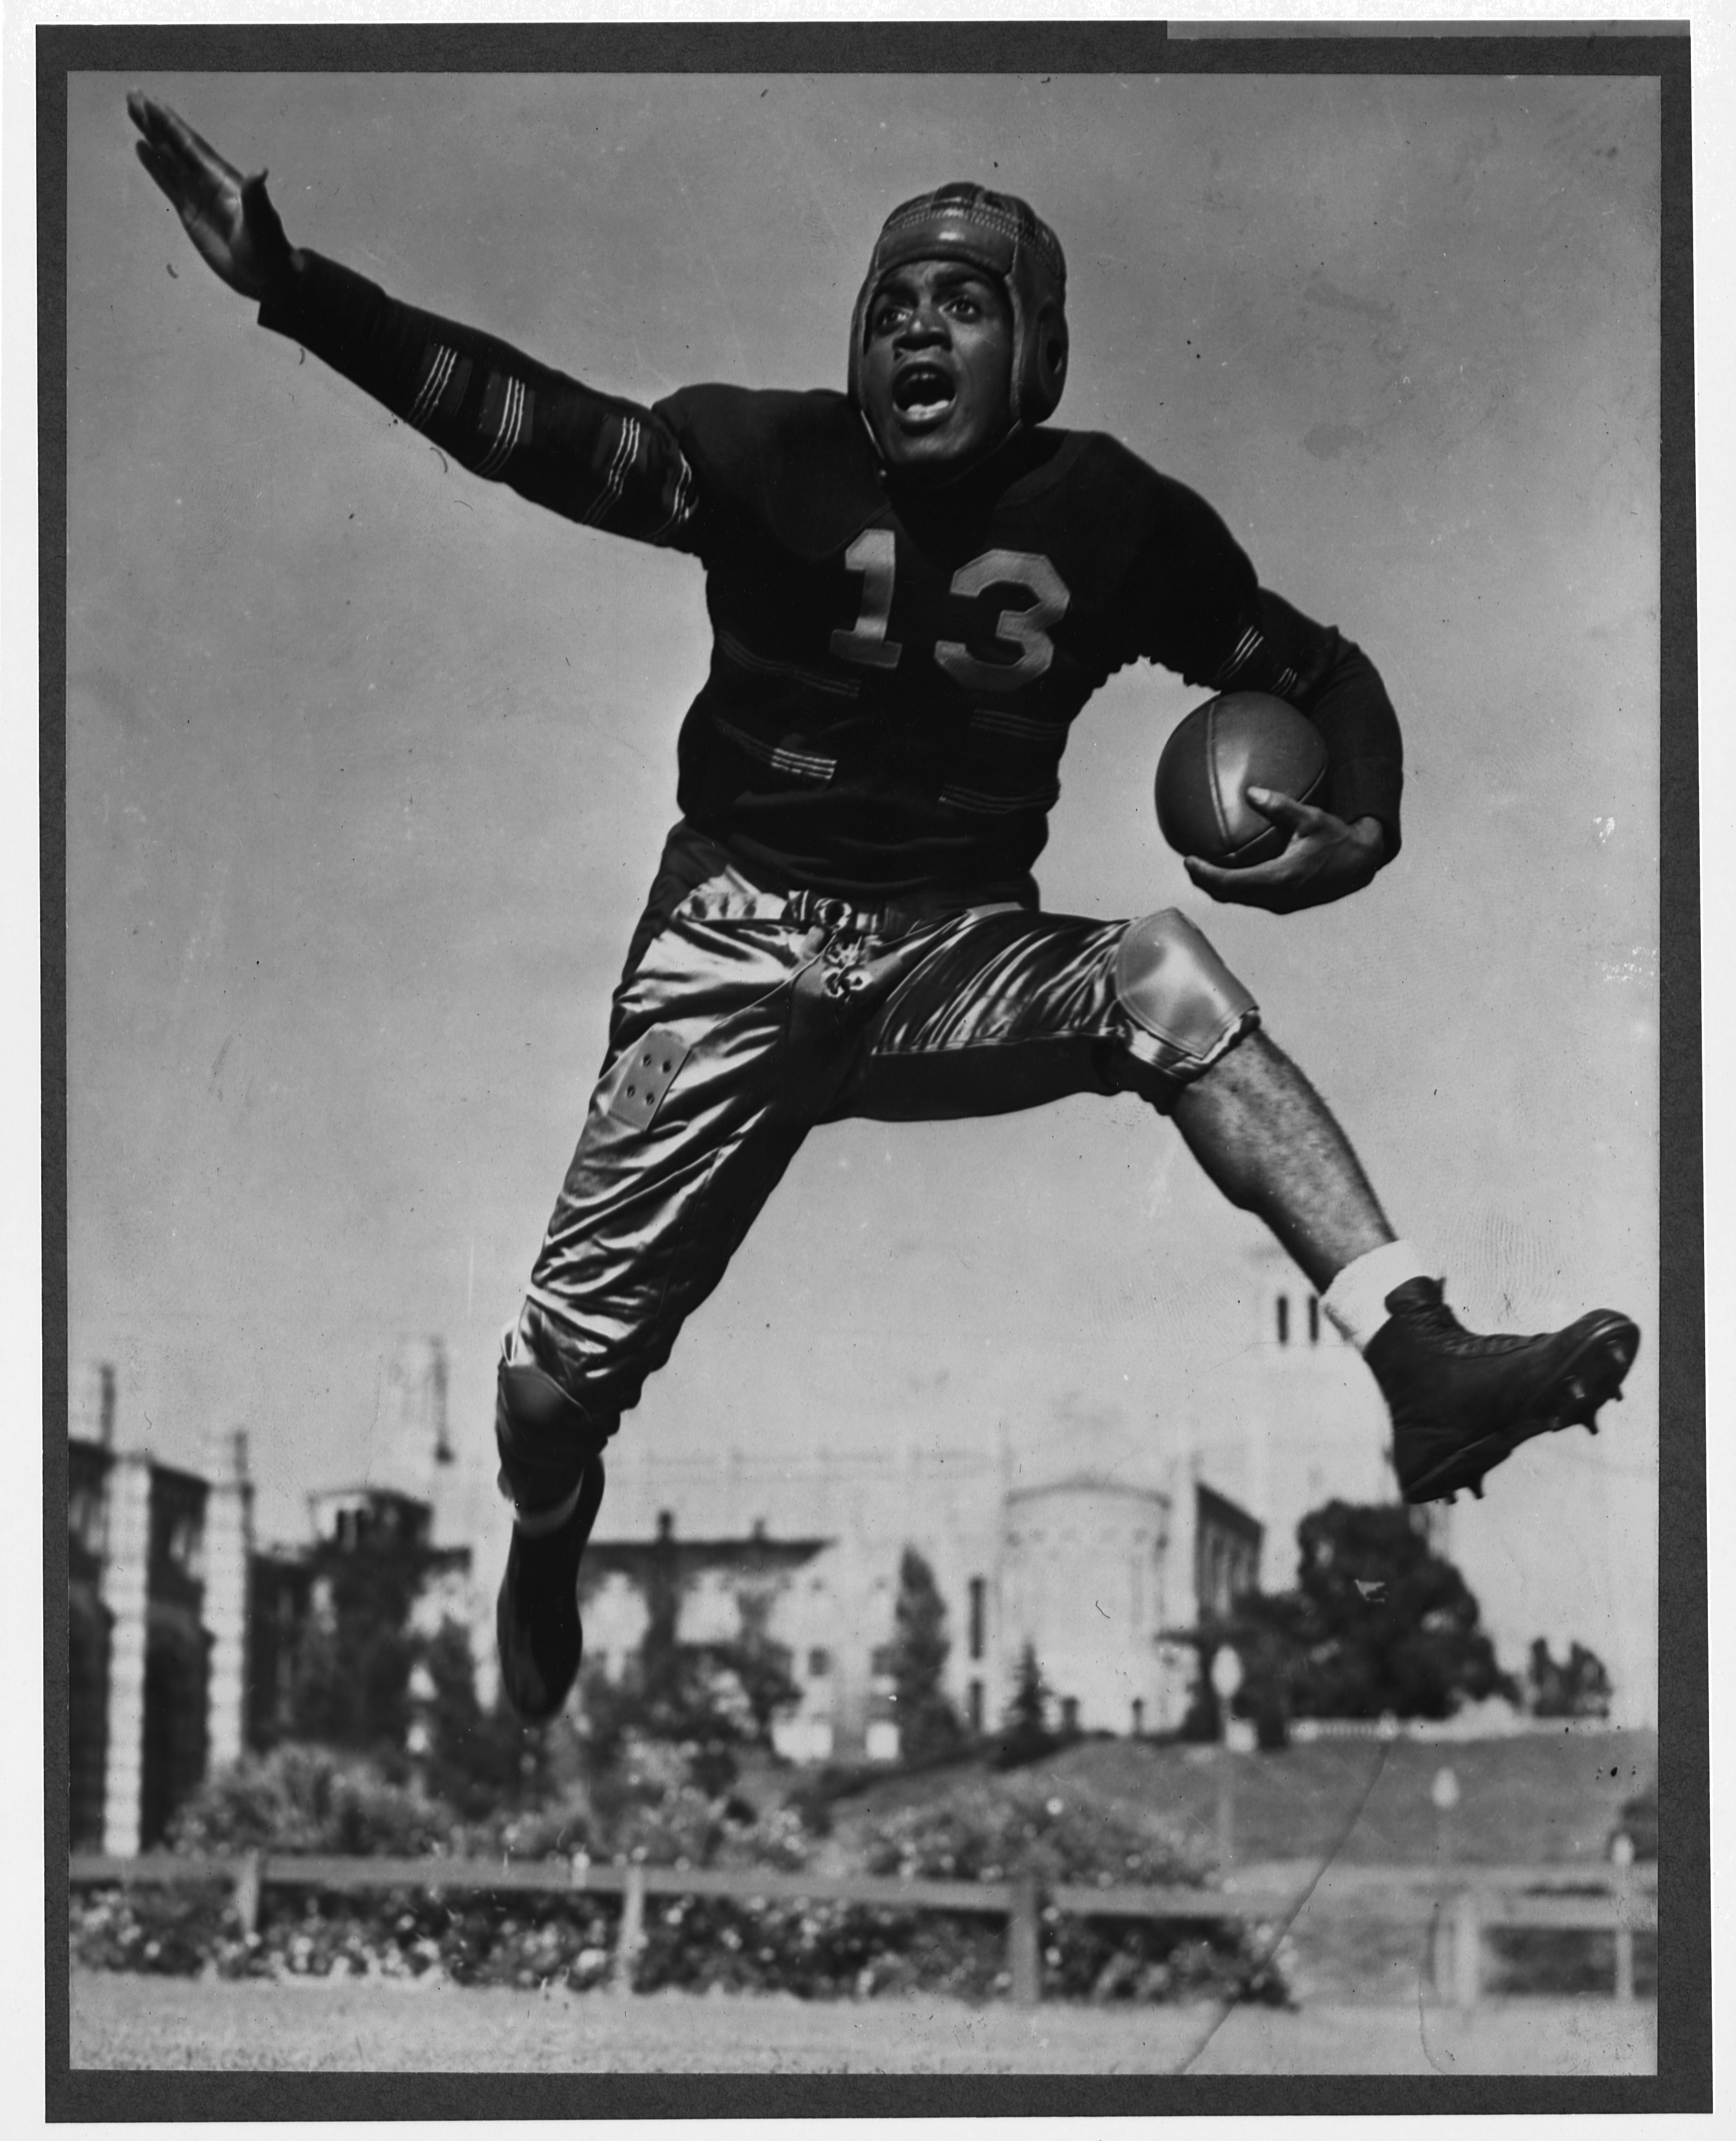 University of California at Los Angeles Bruins football player Kenny Washington leaps high into the air with a football.   (Photo by Library of Congress/Corbis/VCG via Getty Images)